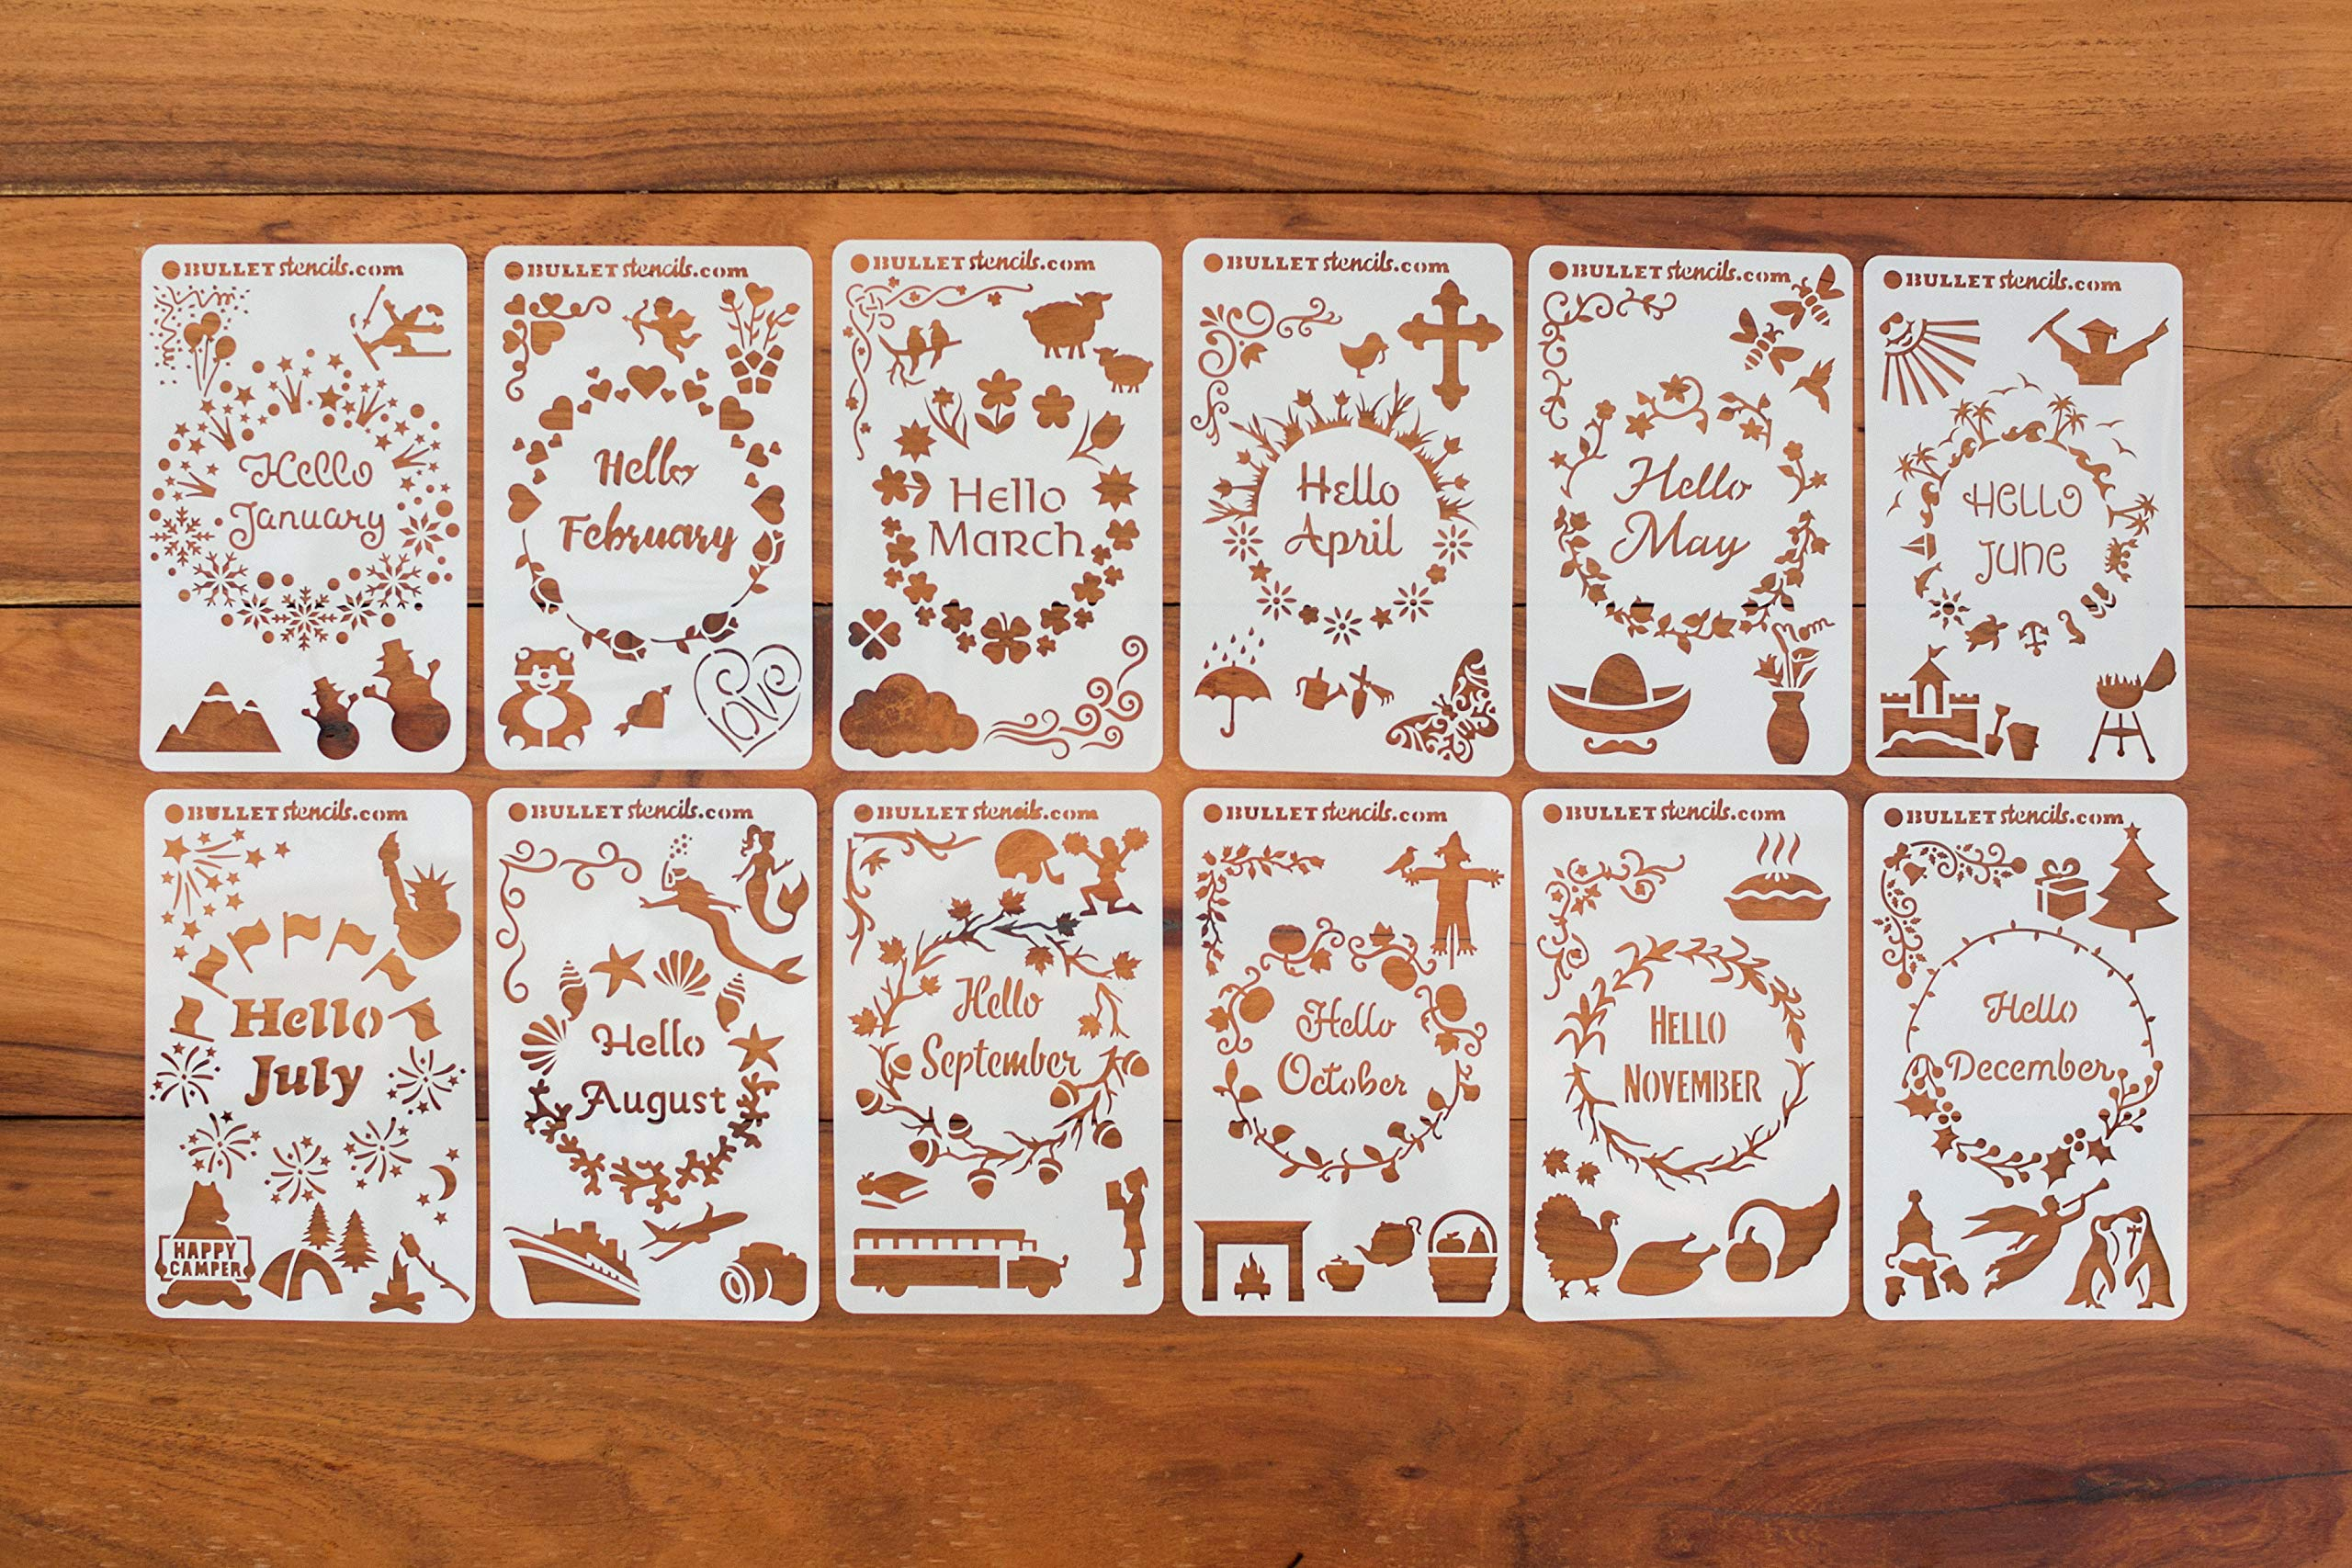 BULLETstencils Hello Months of The Year Set - Featuring 12 Journal Stencils: Includes Fun Themes, Words & Borders for Every Month of The Year! by BULLETstencils